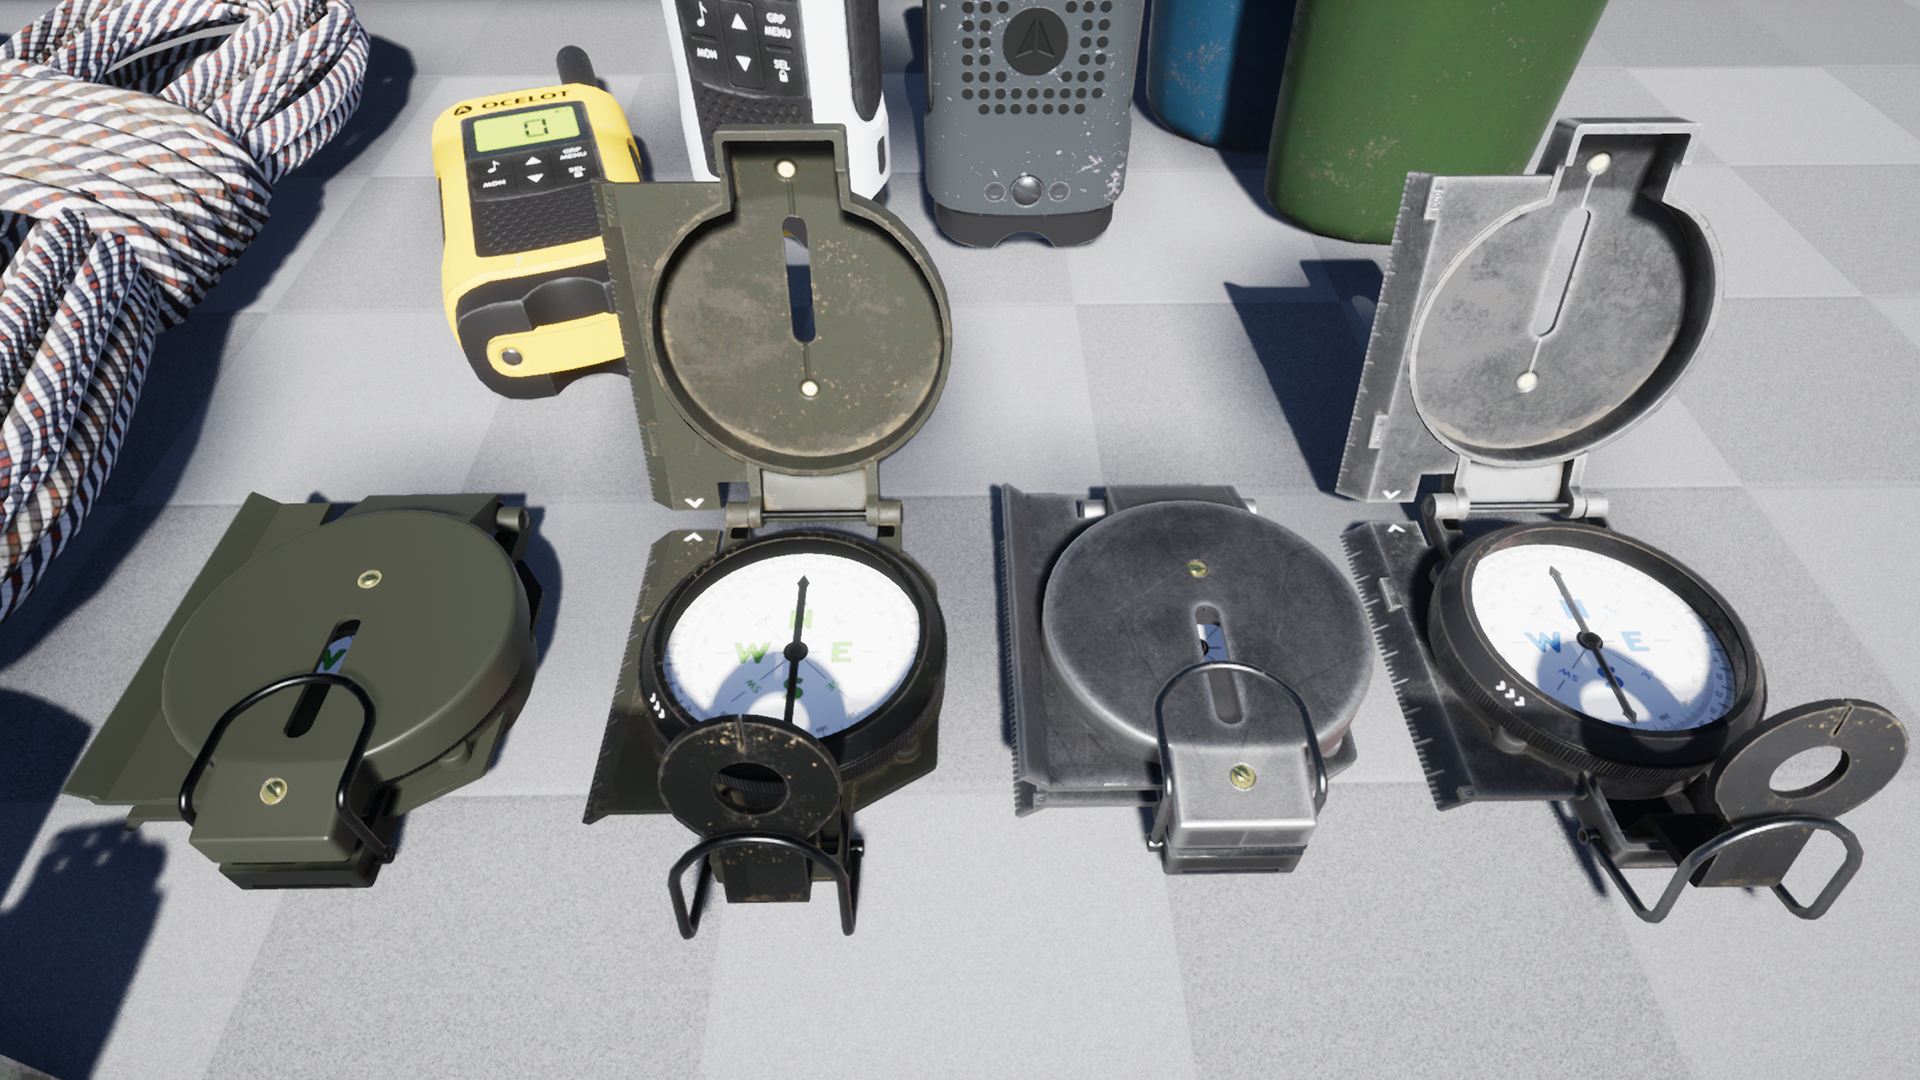 Survival Asset Pack by Samuel Madden in Props - UE4 Marketplace